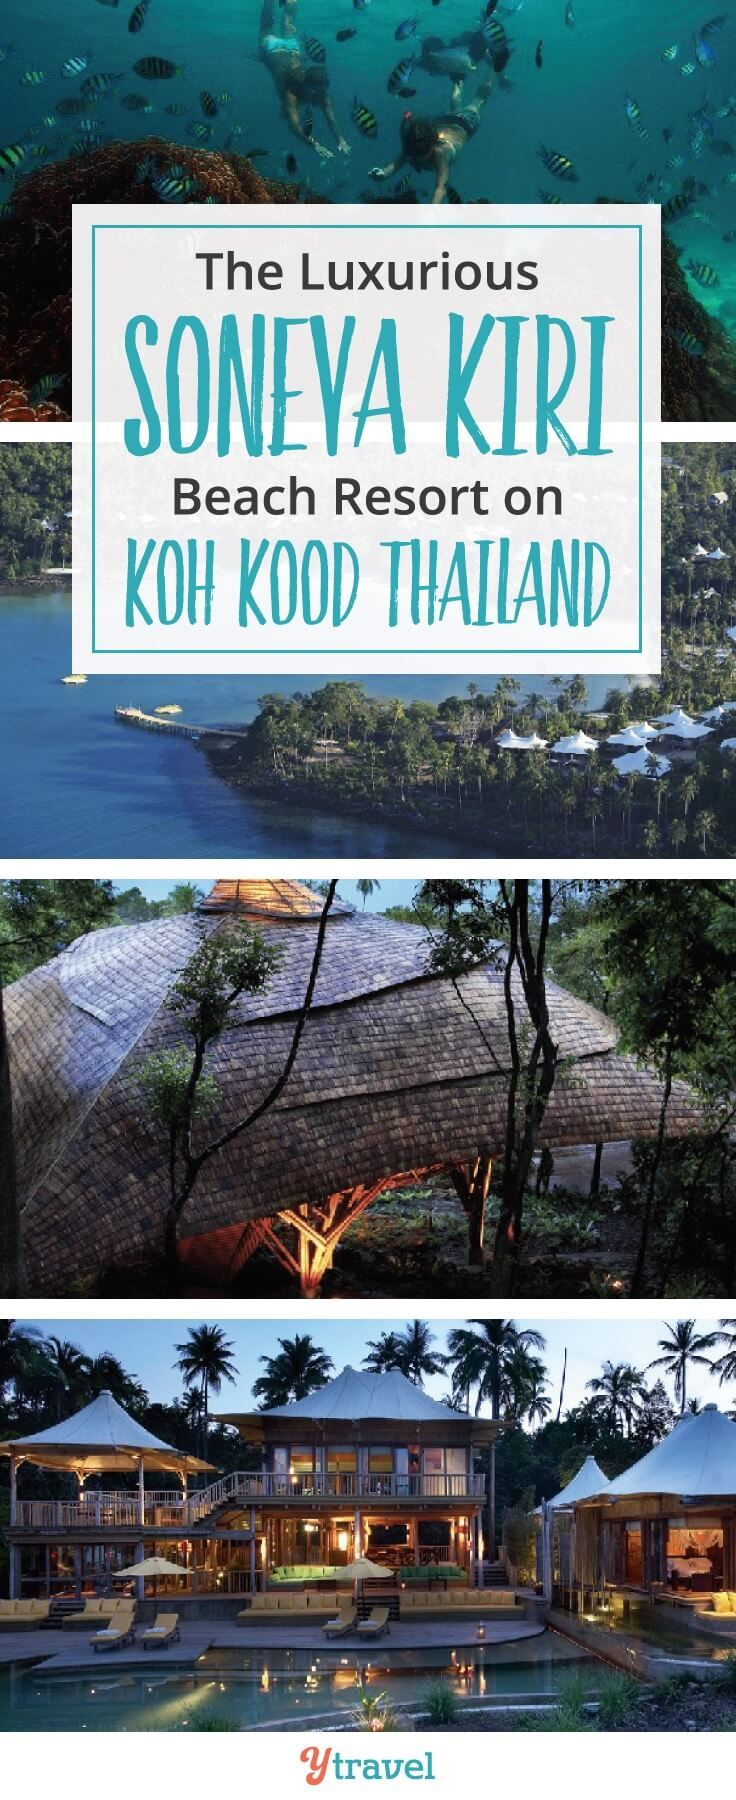 We Ve Found The Perfect Koh Kood Beach Resort For Families Yes It S A Luxury Soneva Kiri On Ko Thailand Is Just